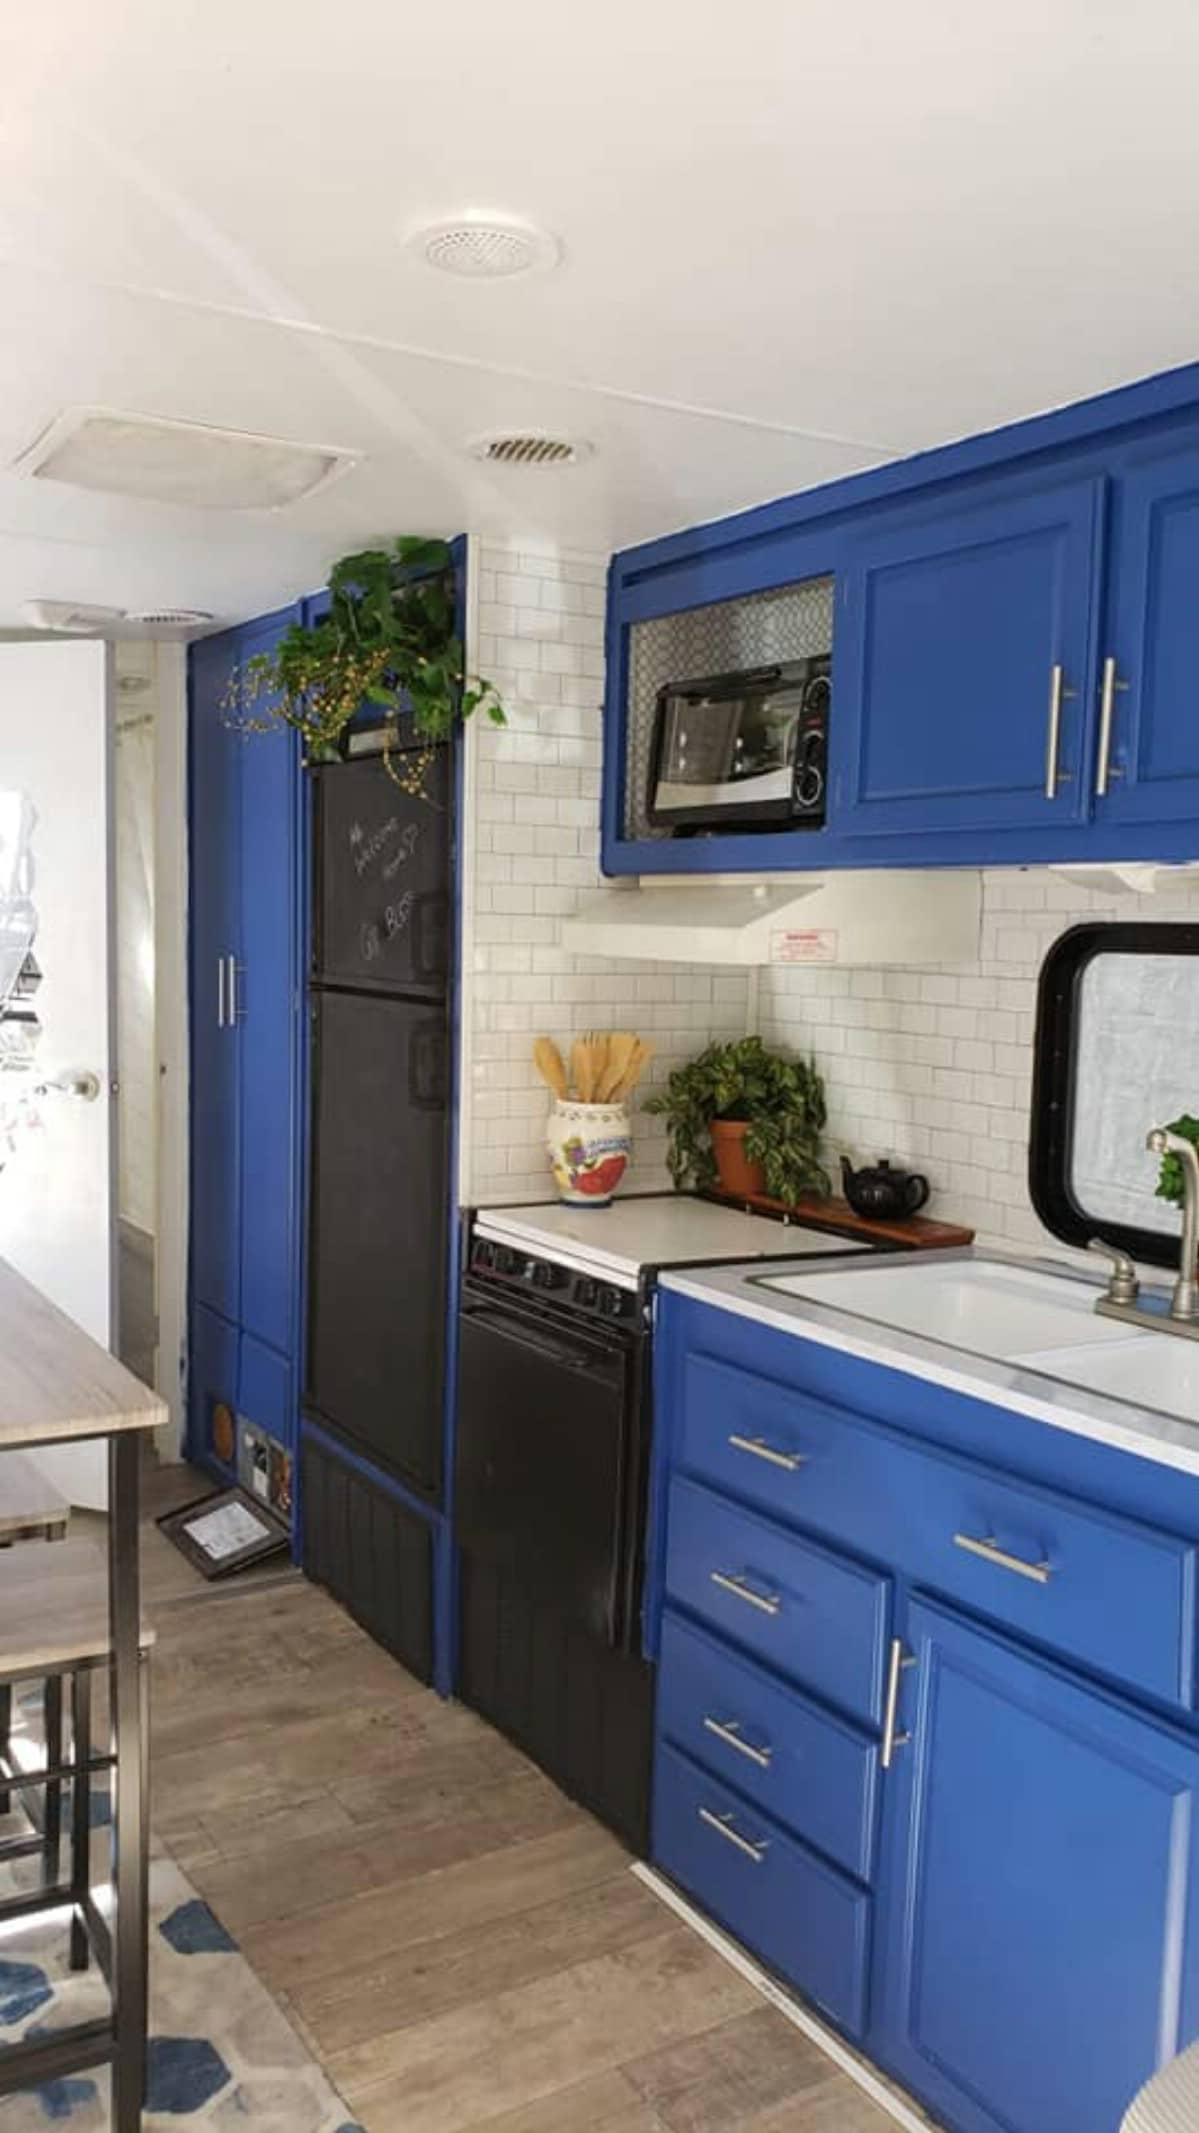 Blue kitchen cabinets with full stove and sink